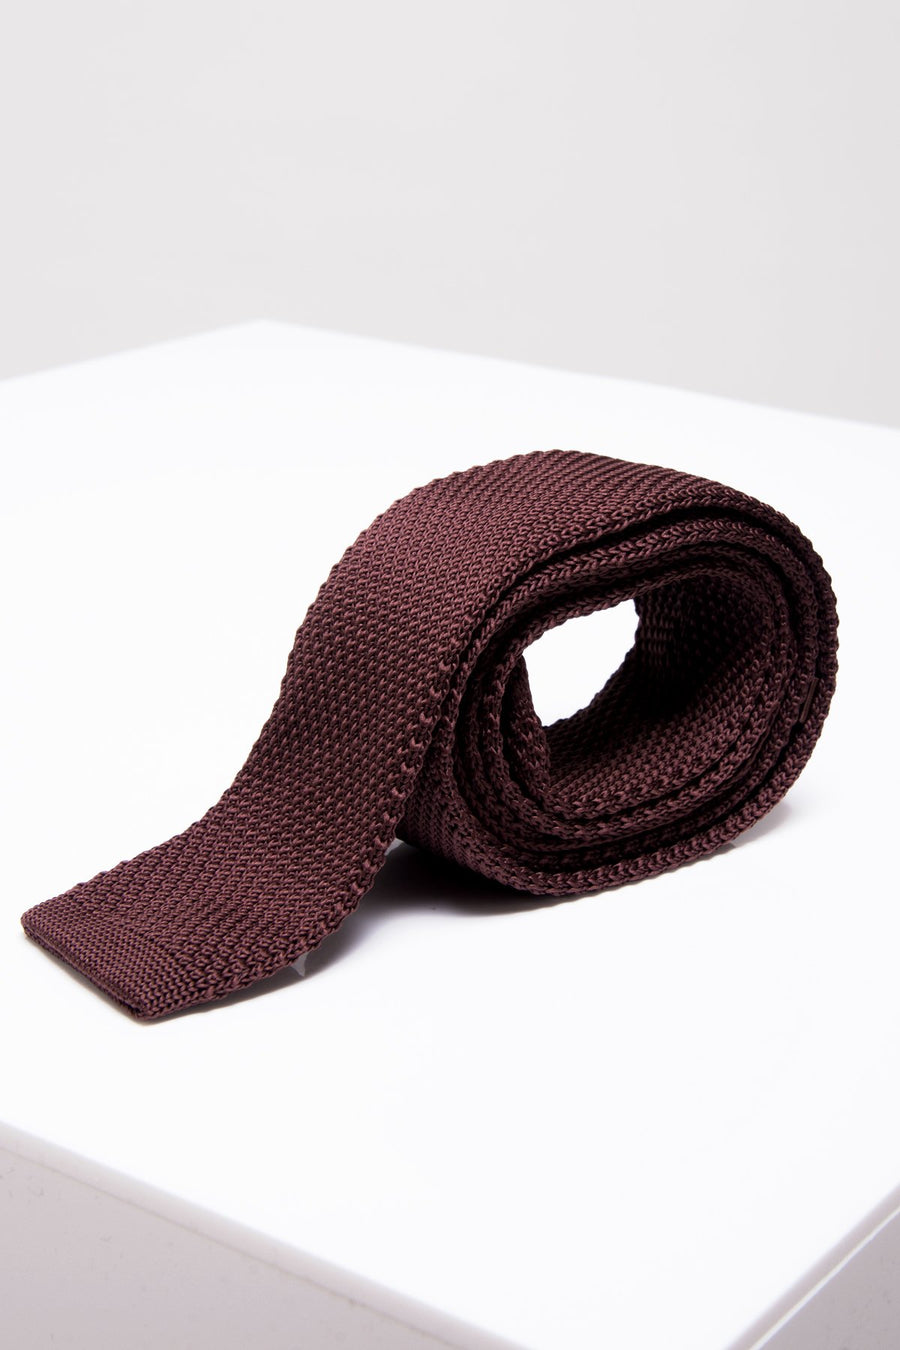 KT Brown Knitted Tie - Wedding Suit Direct